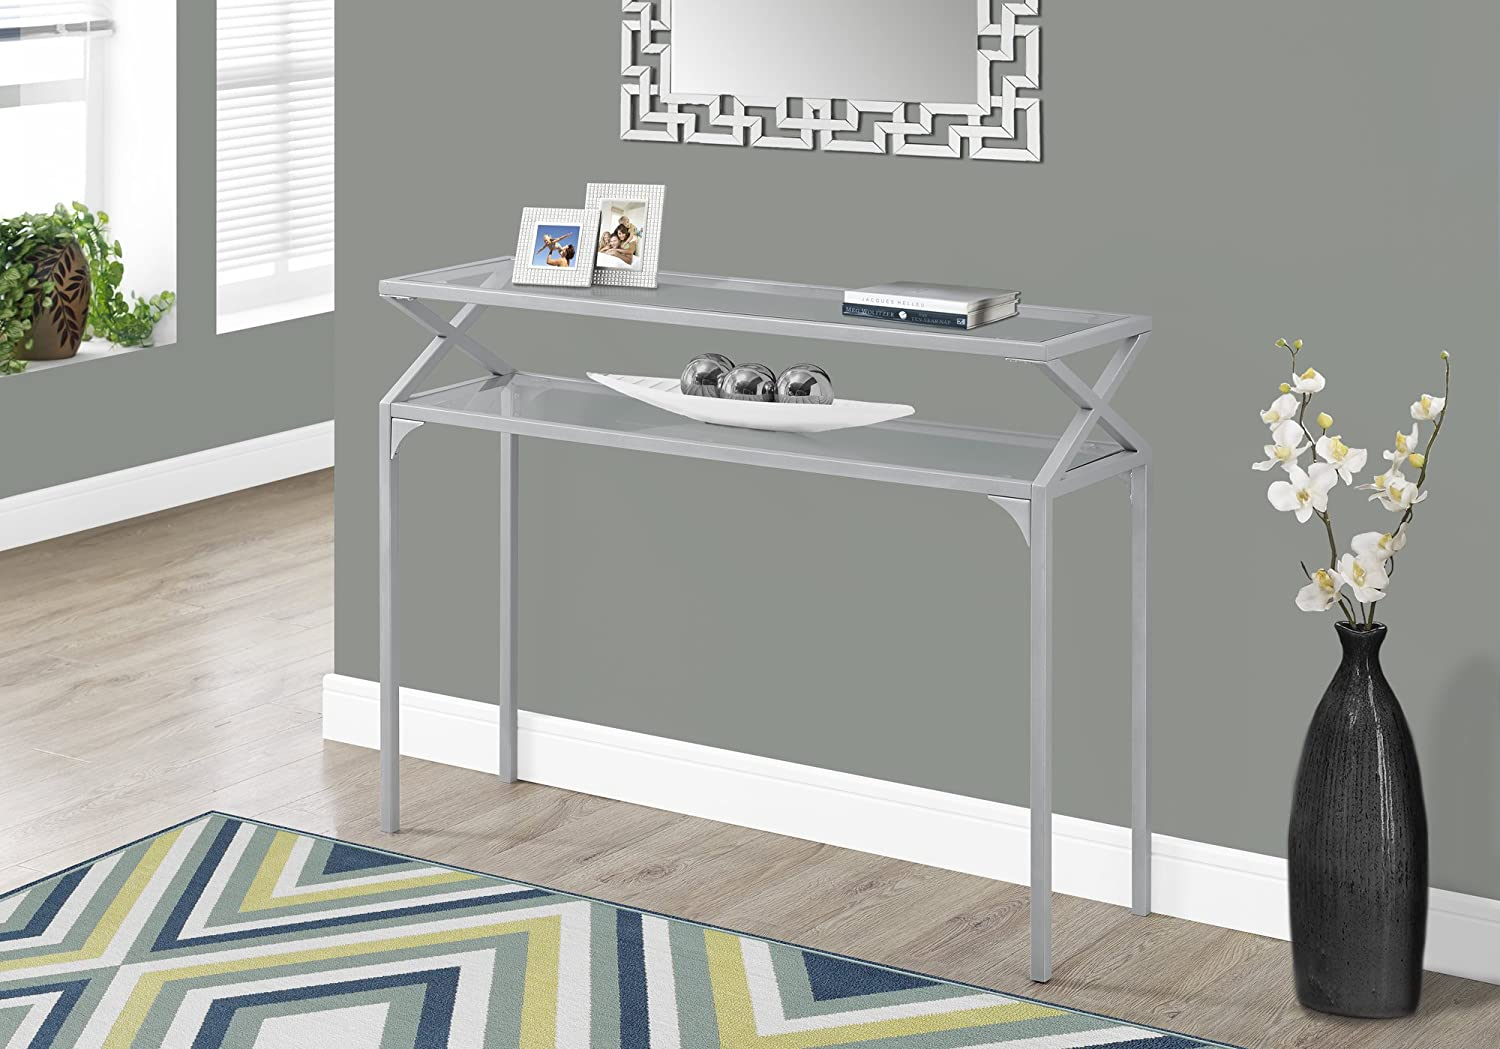 Monarch Specialties I 2115 Accent Table-42 L Silver Metal Hall Console